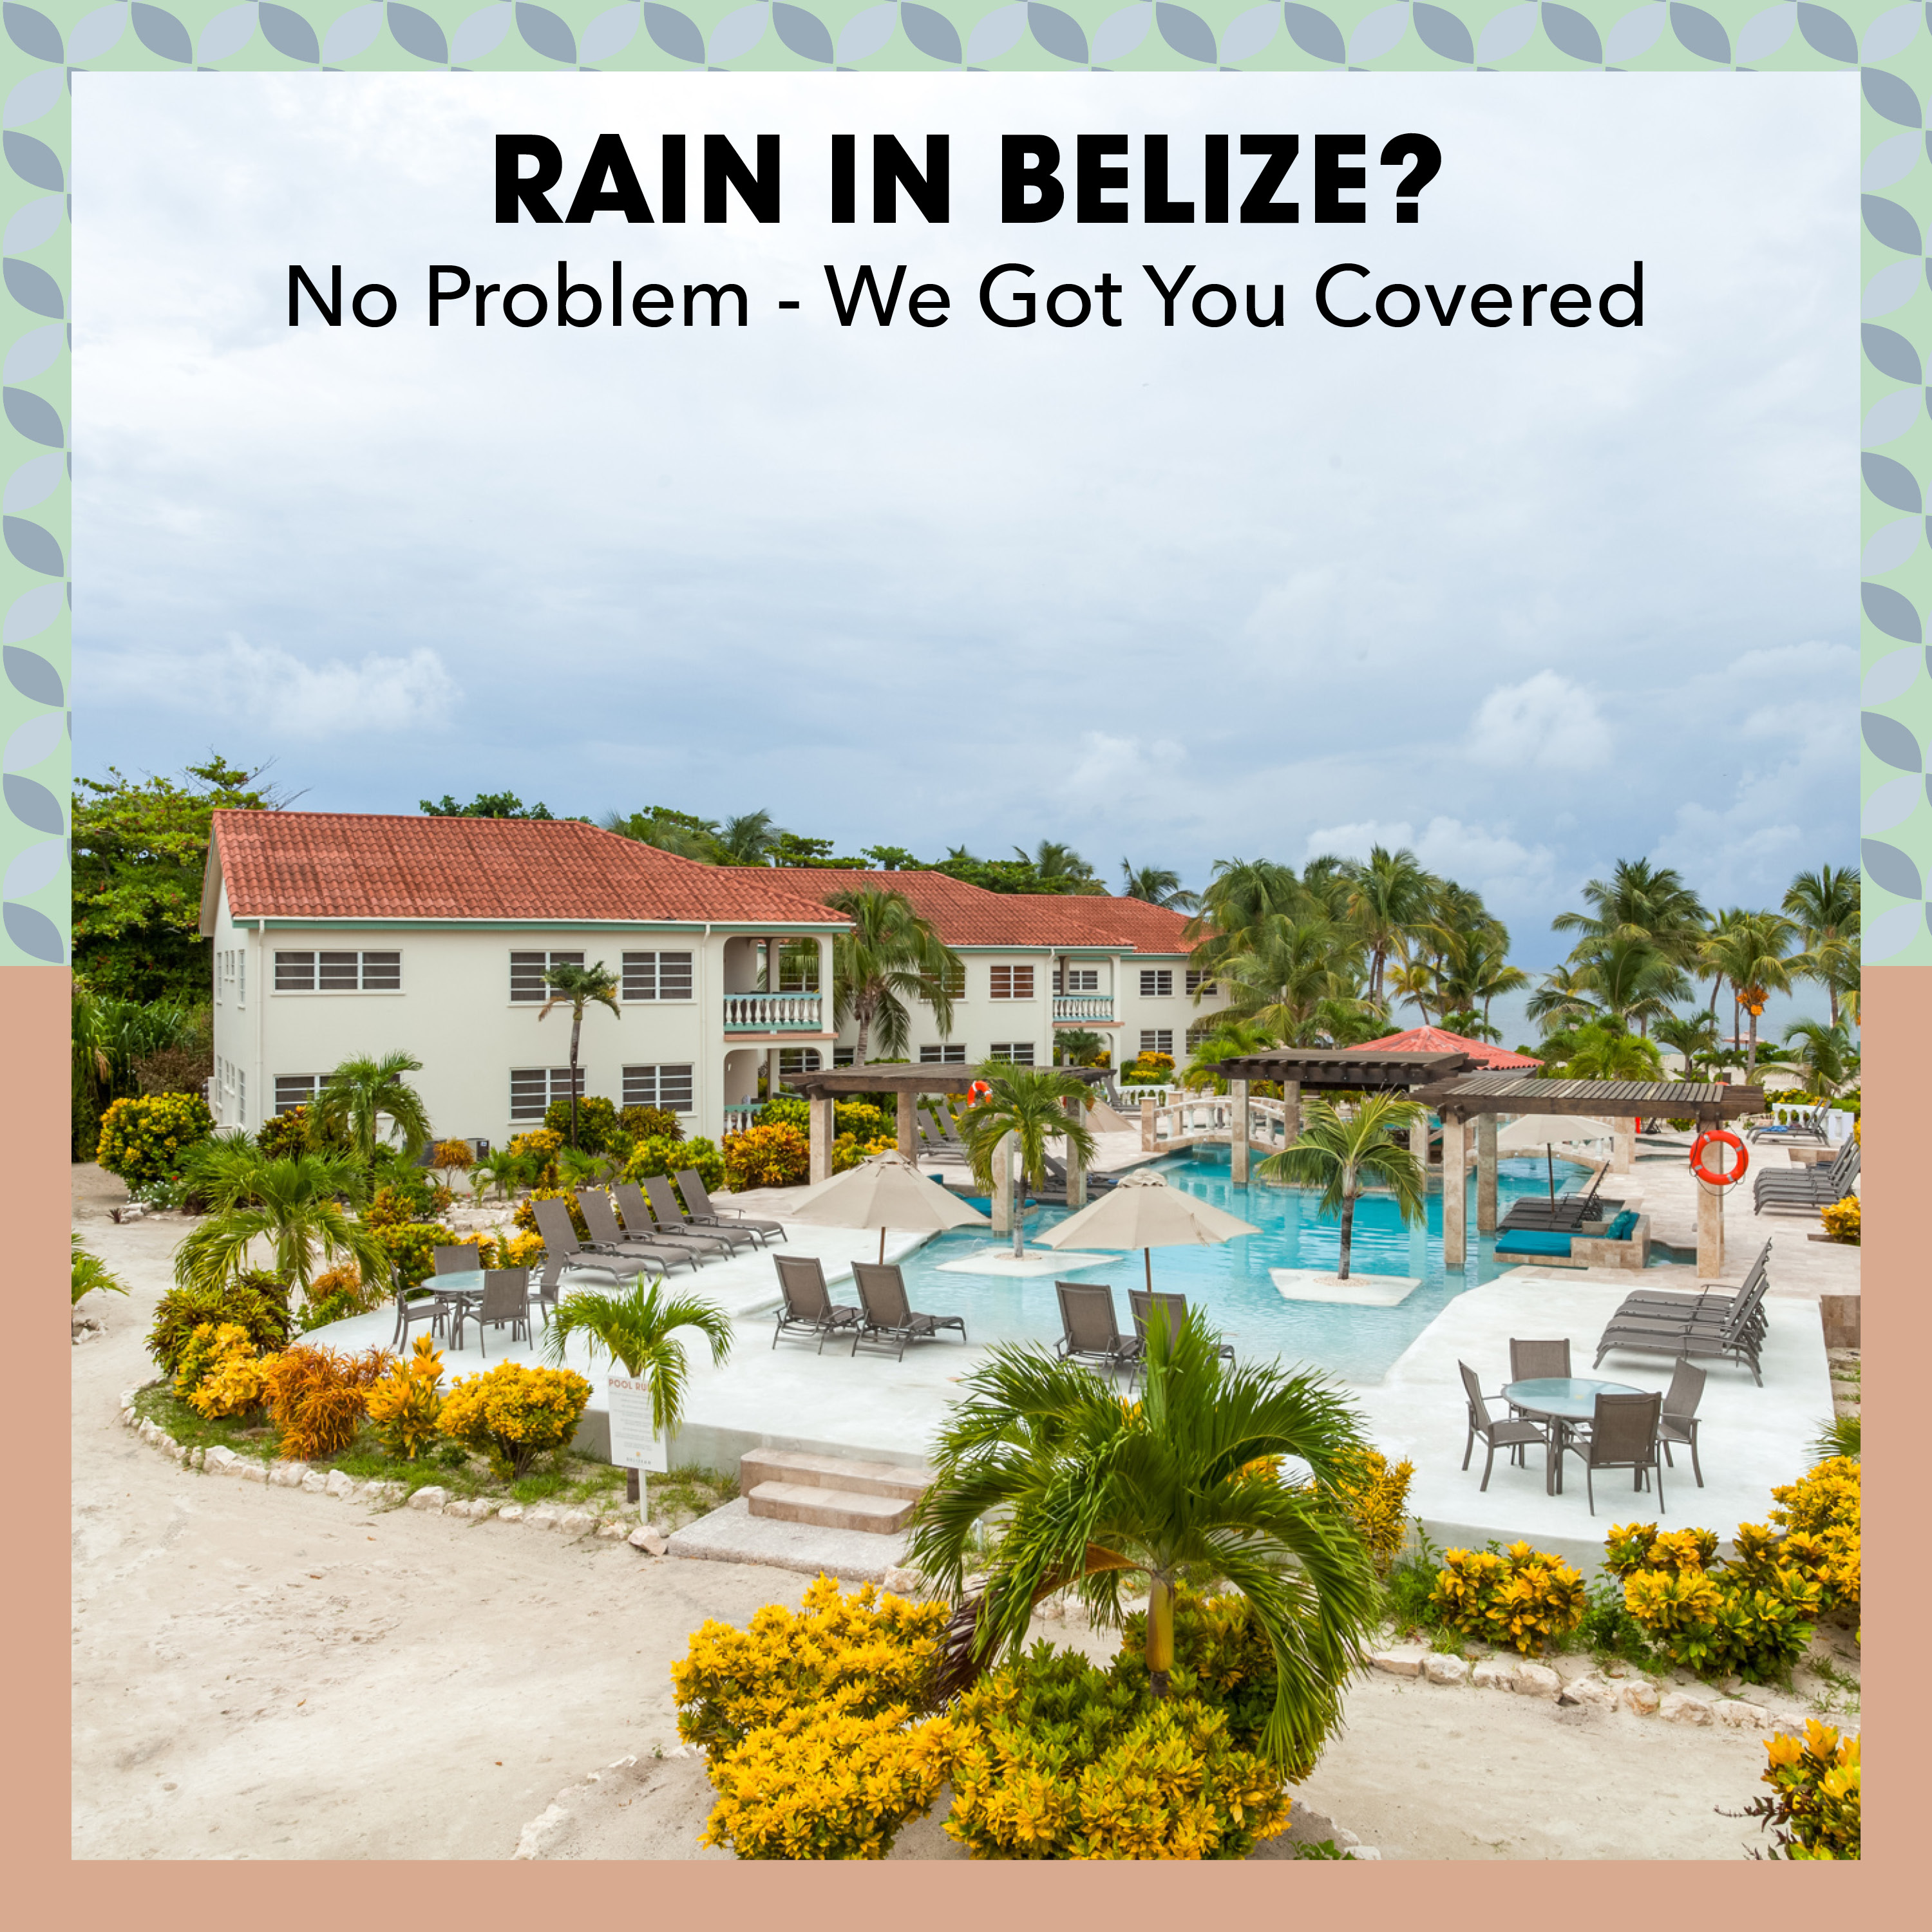 Rain in Belize? No problem- we got you covered